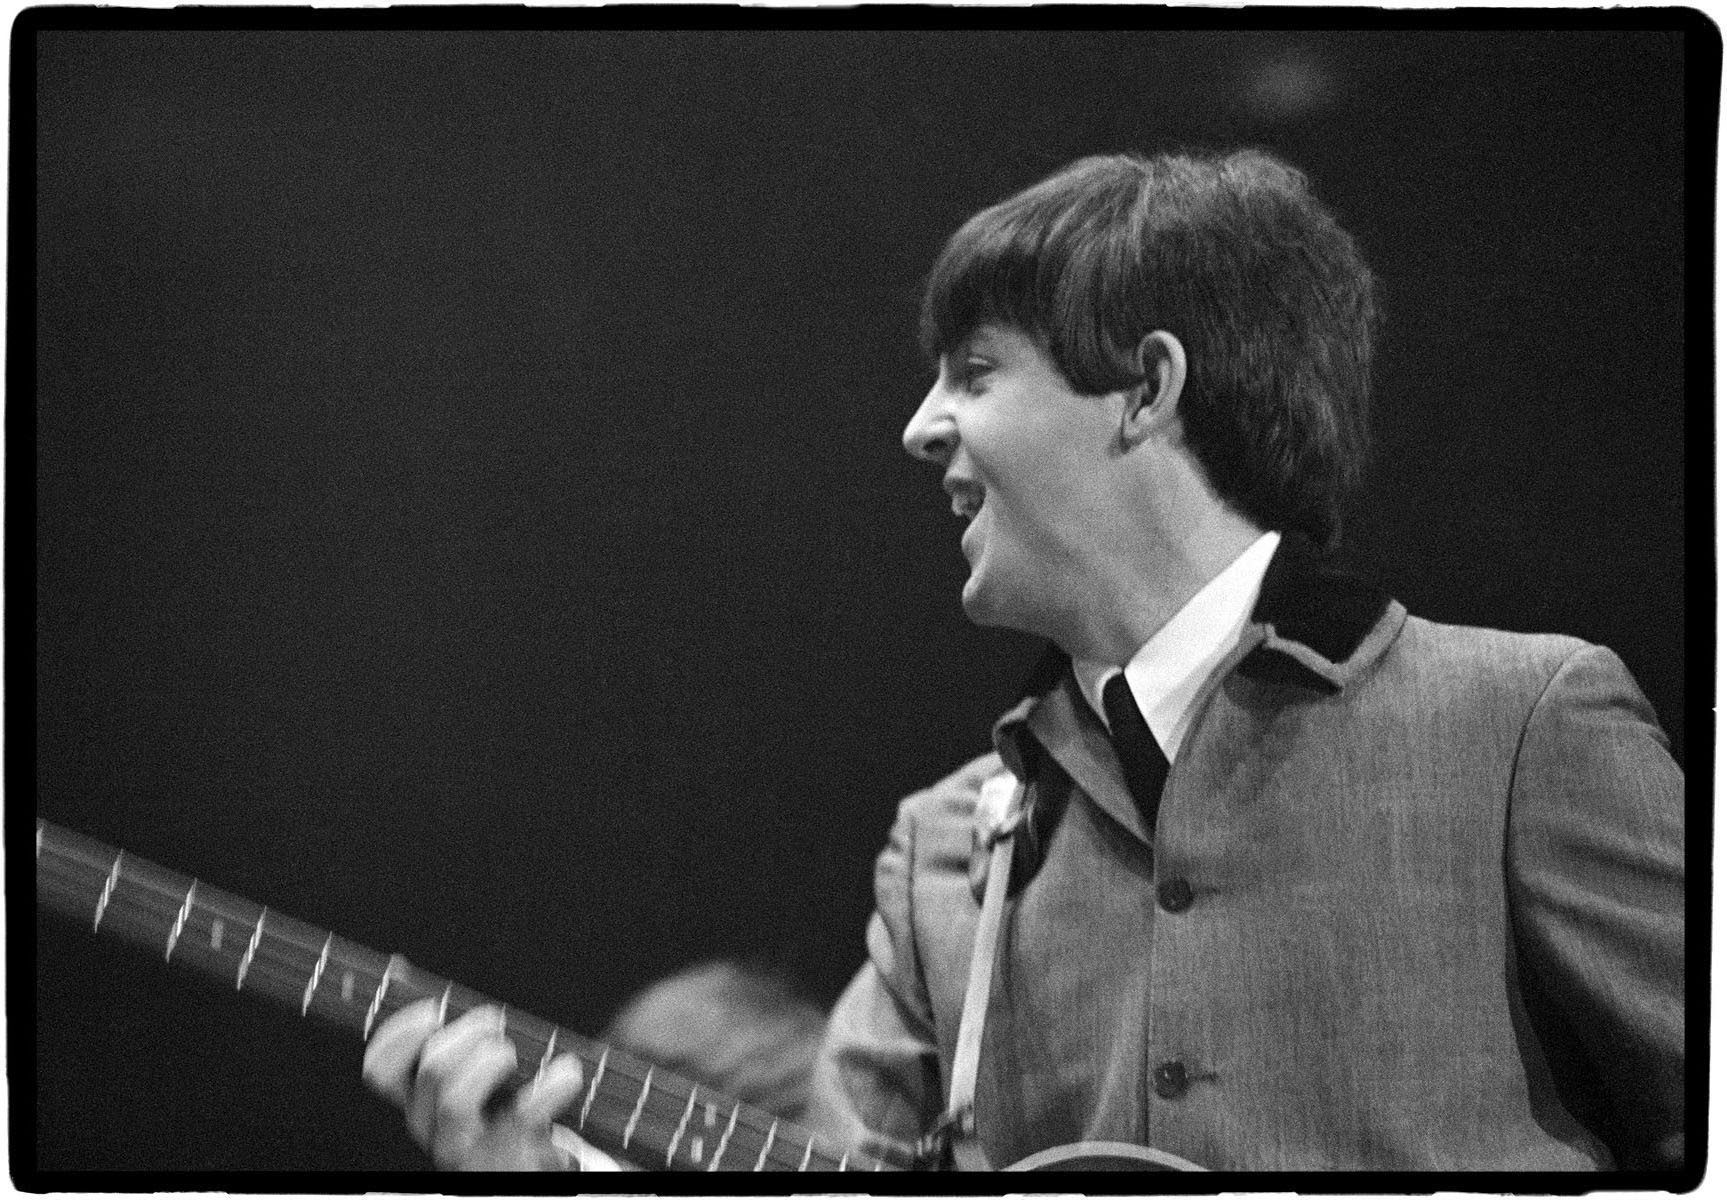 Paul McCartneyBeatles 1st US Concert The Coliseum Washington DC 1964